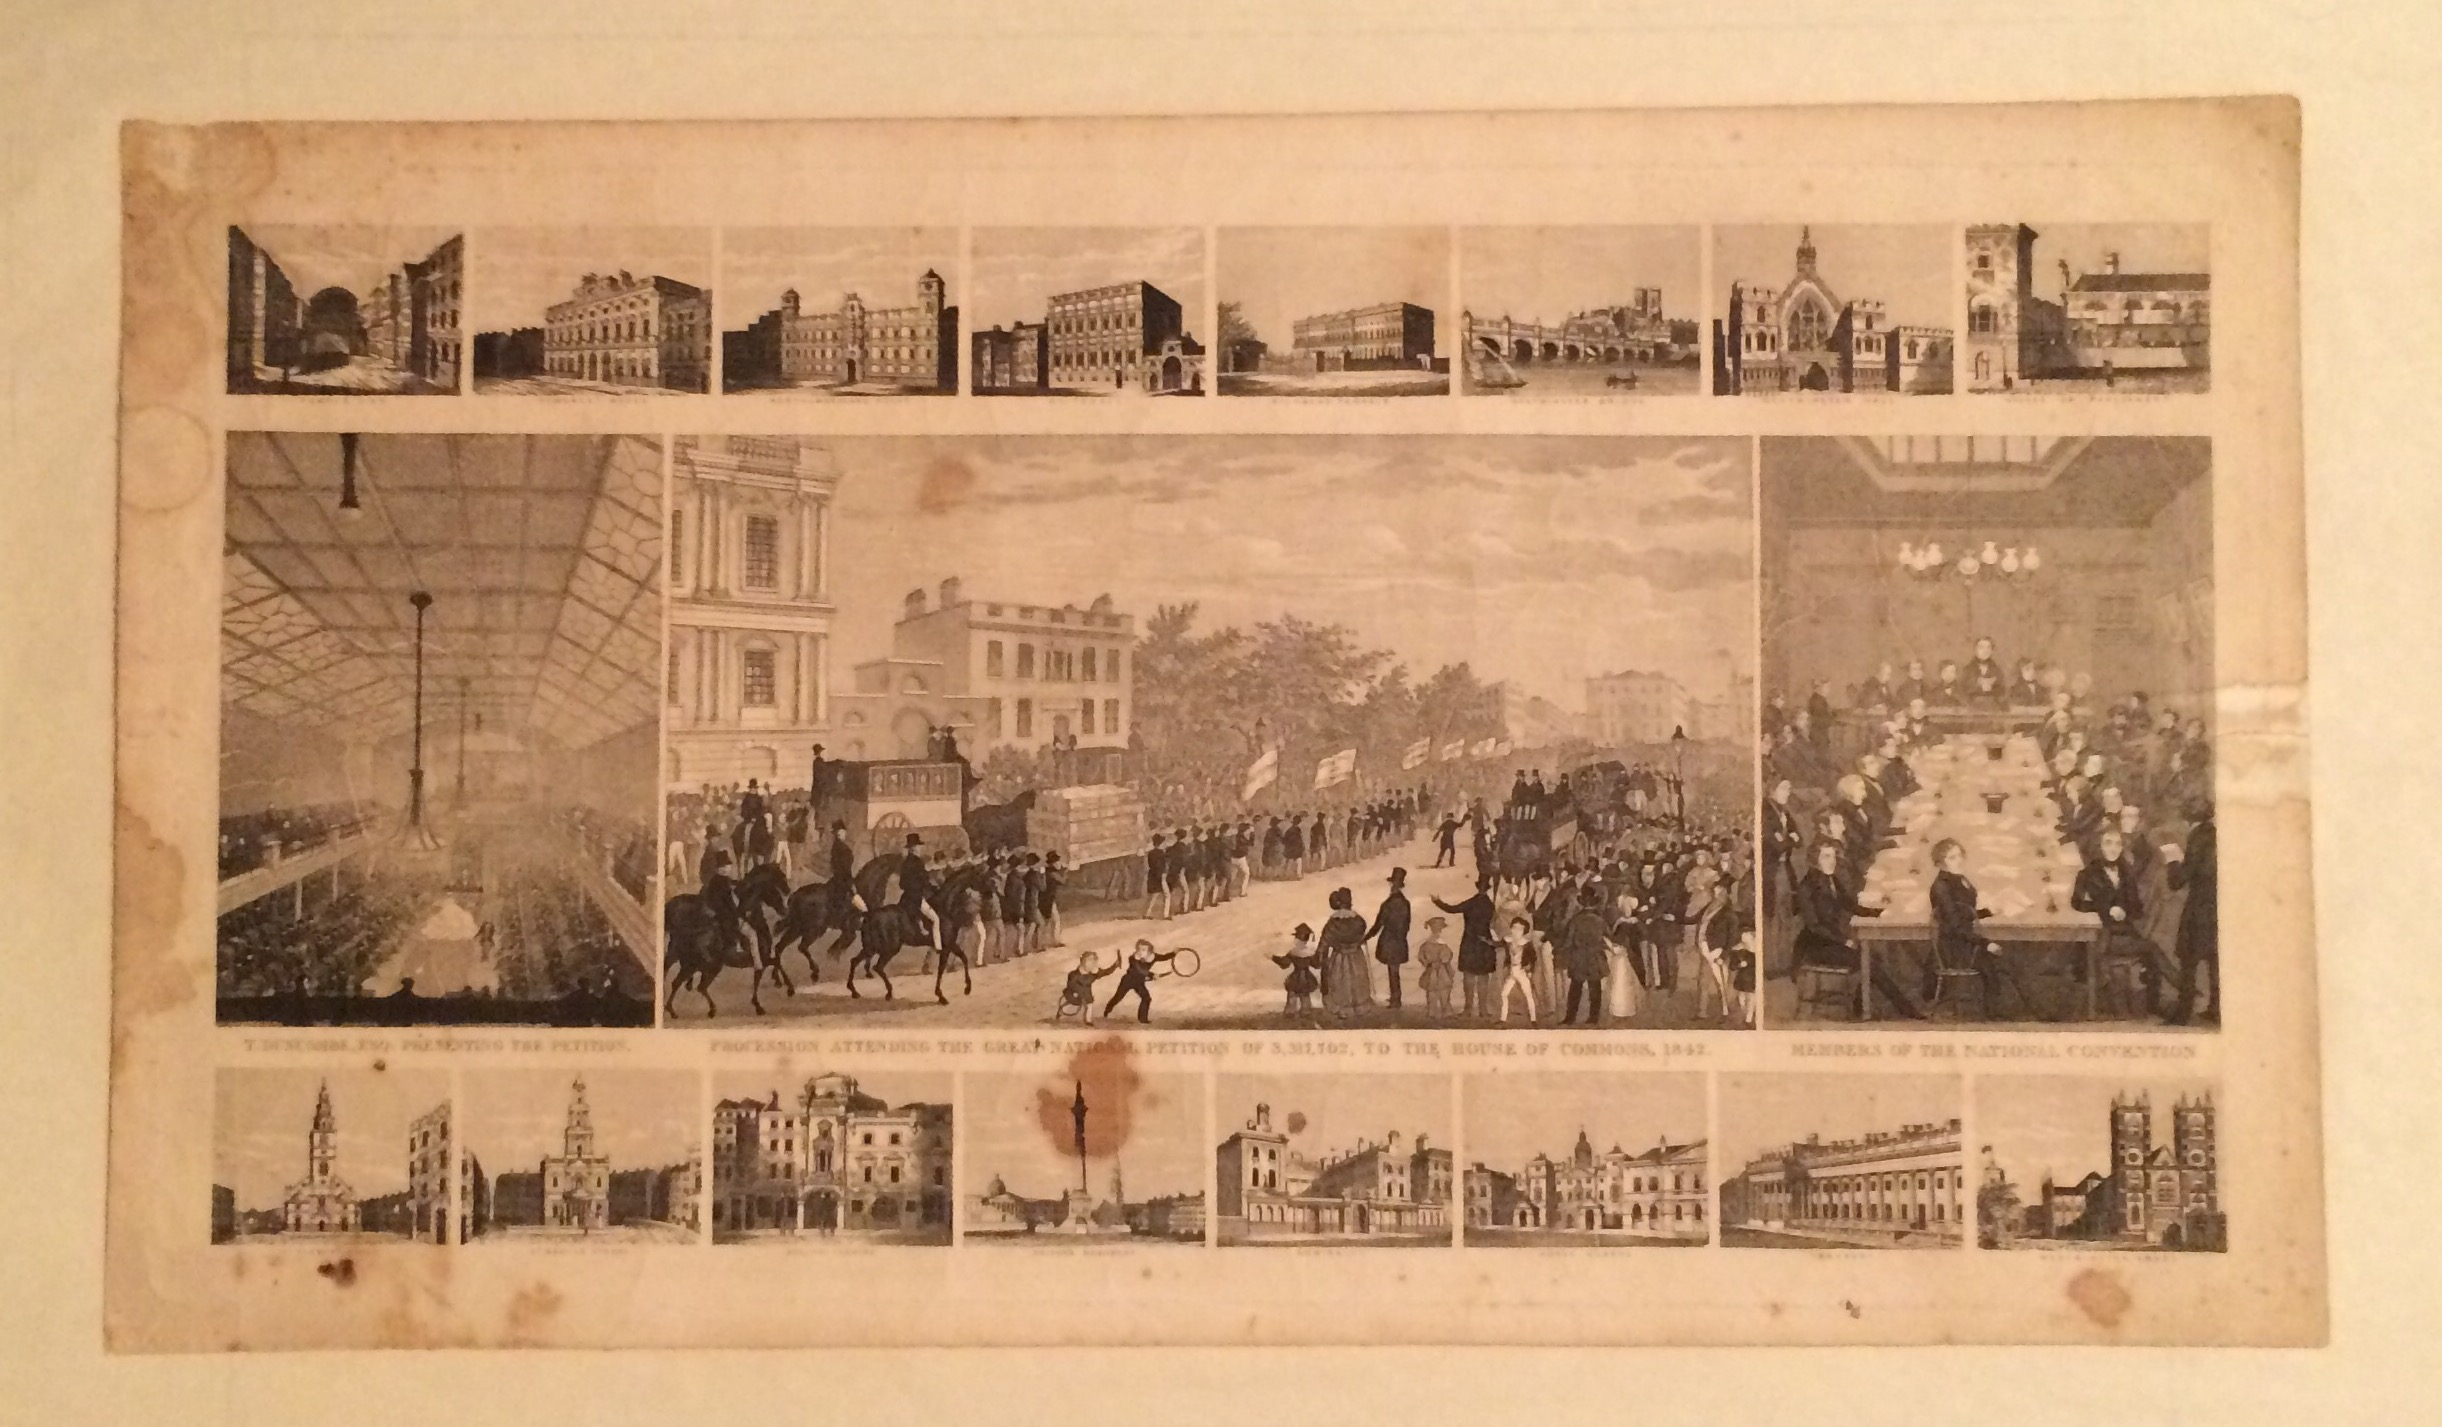 1842 chartist petition